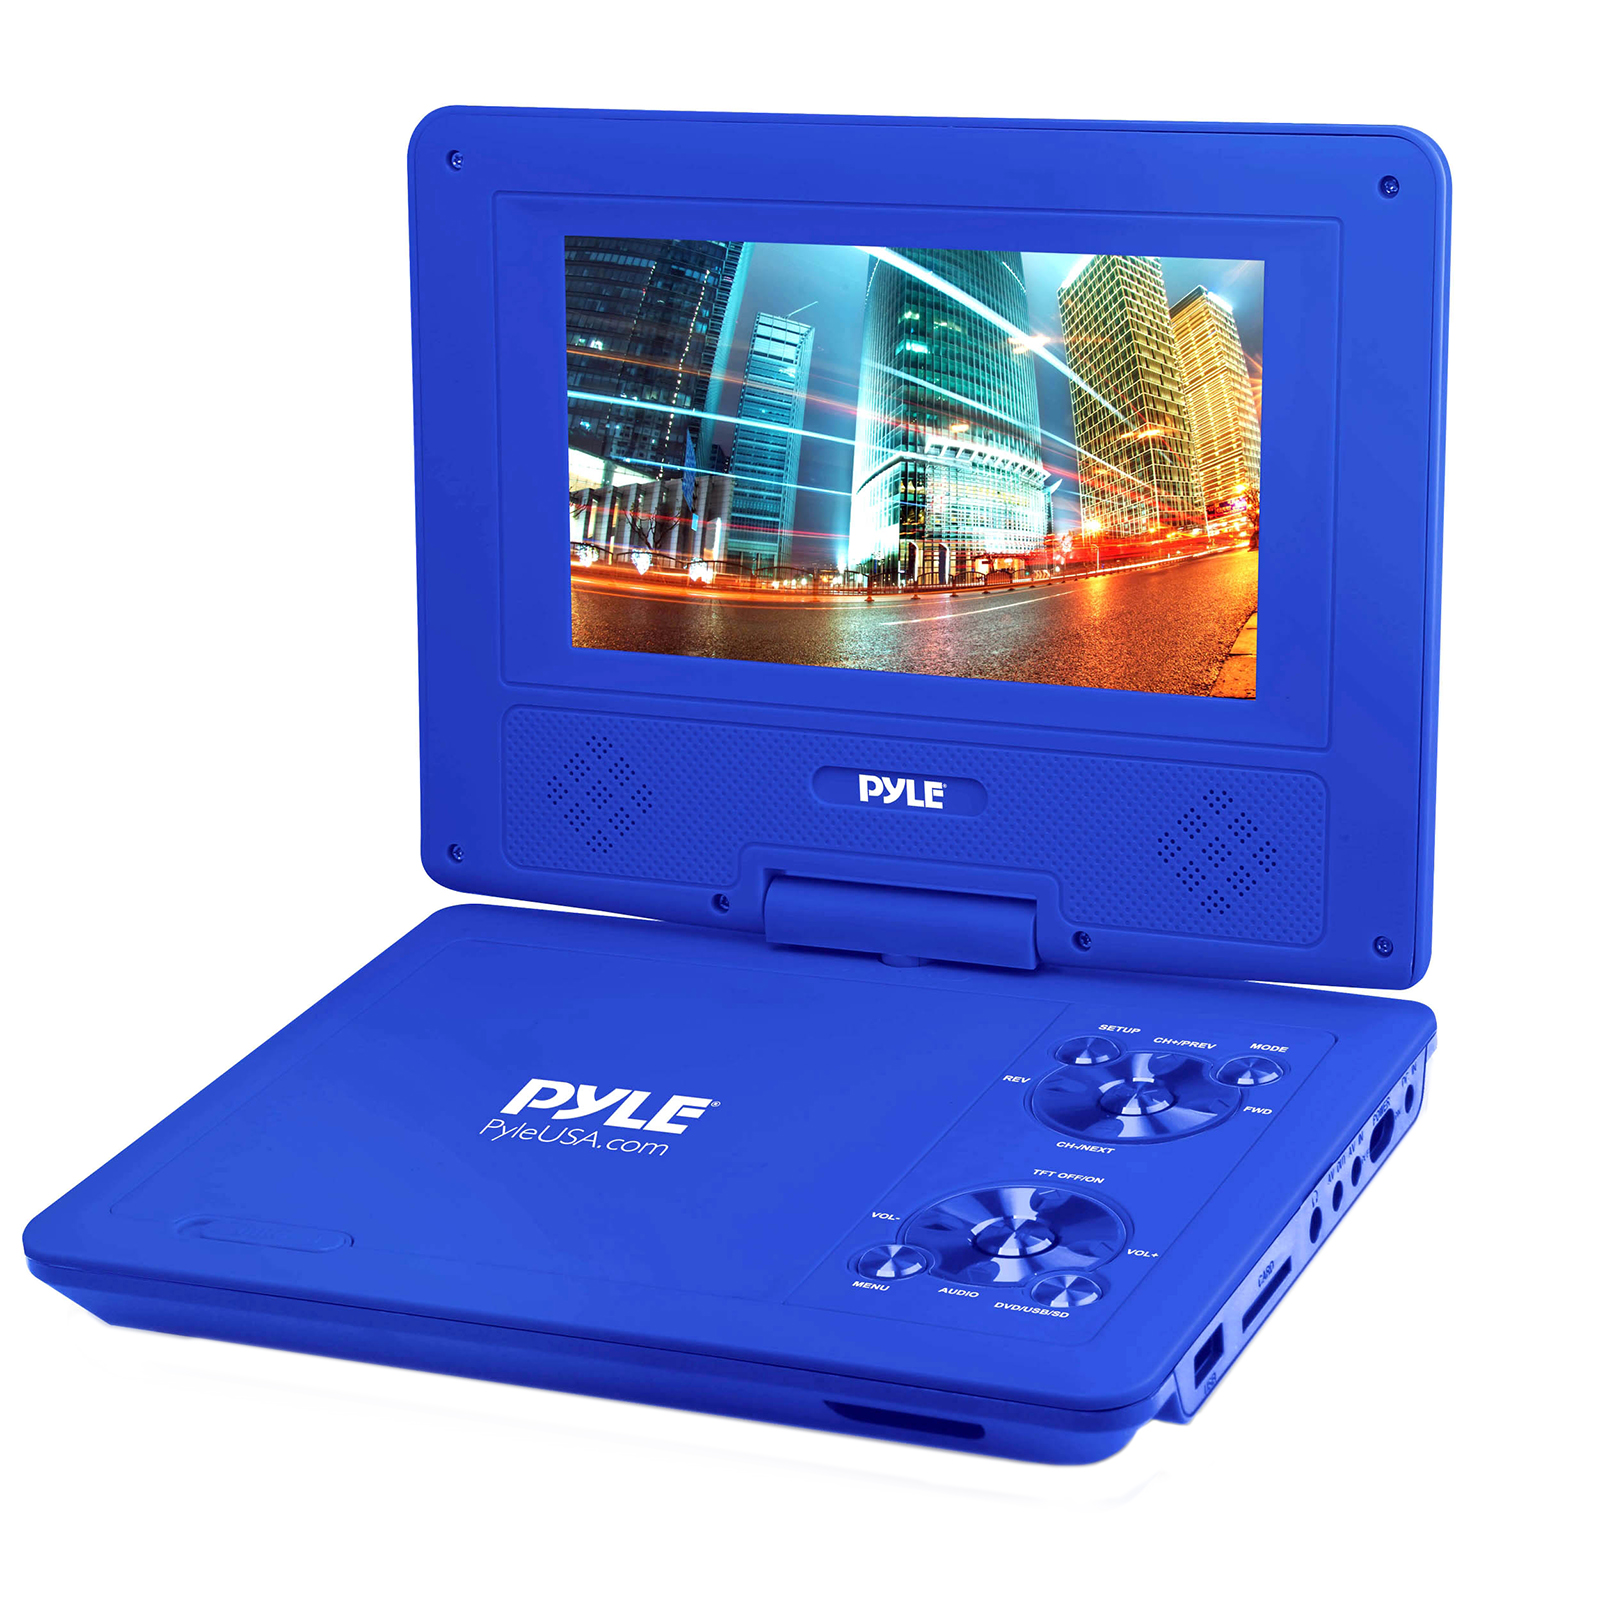 """9"""" Portable CD/DVD Player, Built-in Battery, USB/SD Card Memory Readers (Blue)"""